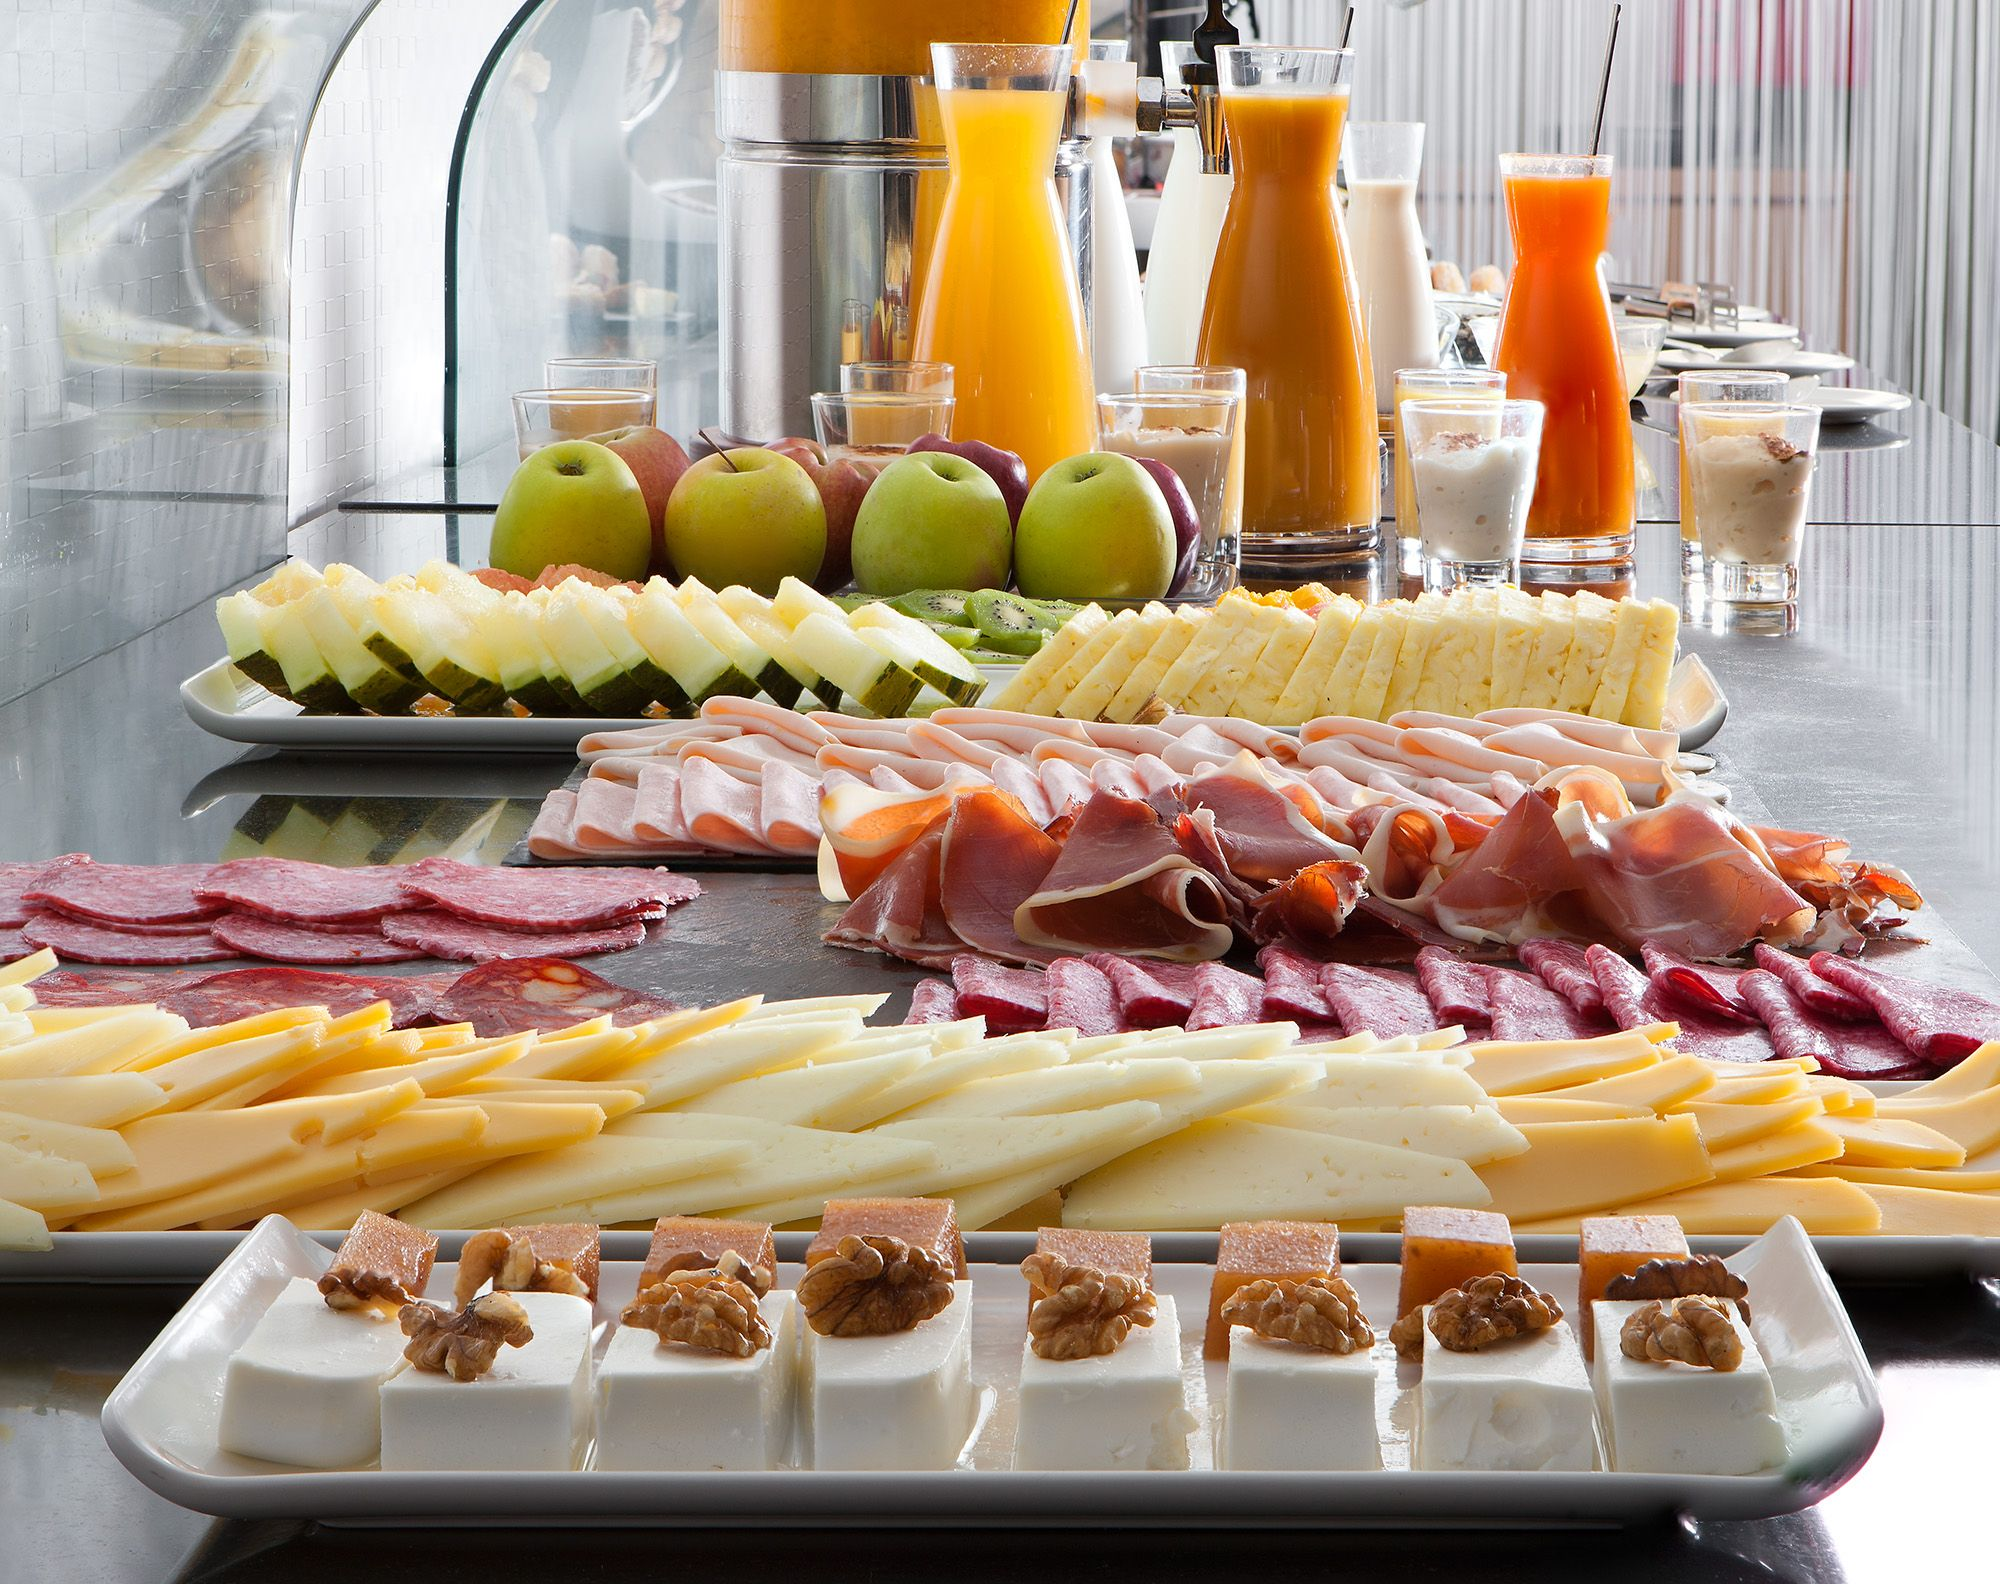 Buffet Blanc Style New York - Continental Breakfast Buffet Pinteres [mjhdah]https://images1.houstonpress.com/imager/u/original/8309866/agrandeballroombrunch.jpg